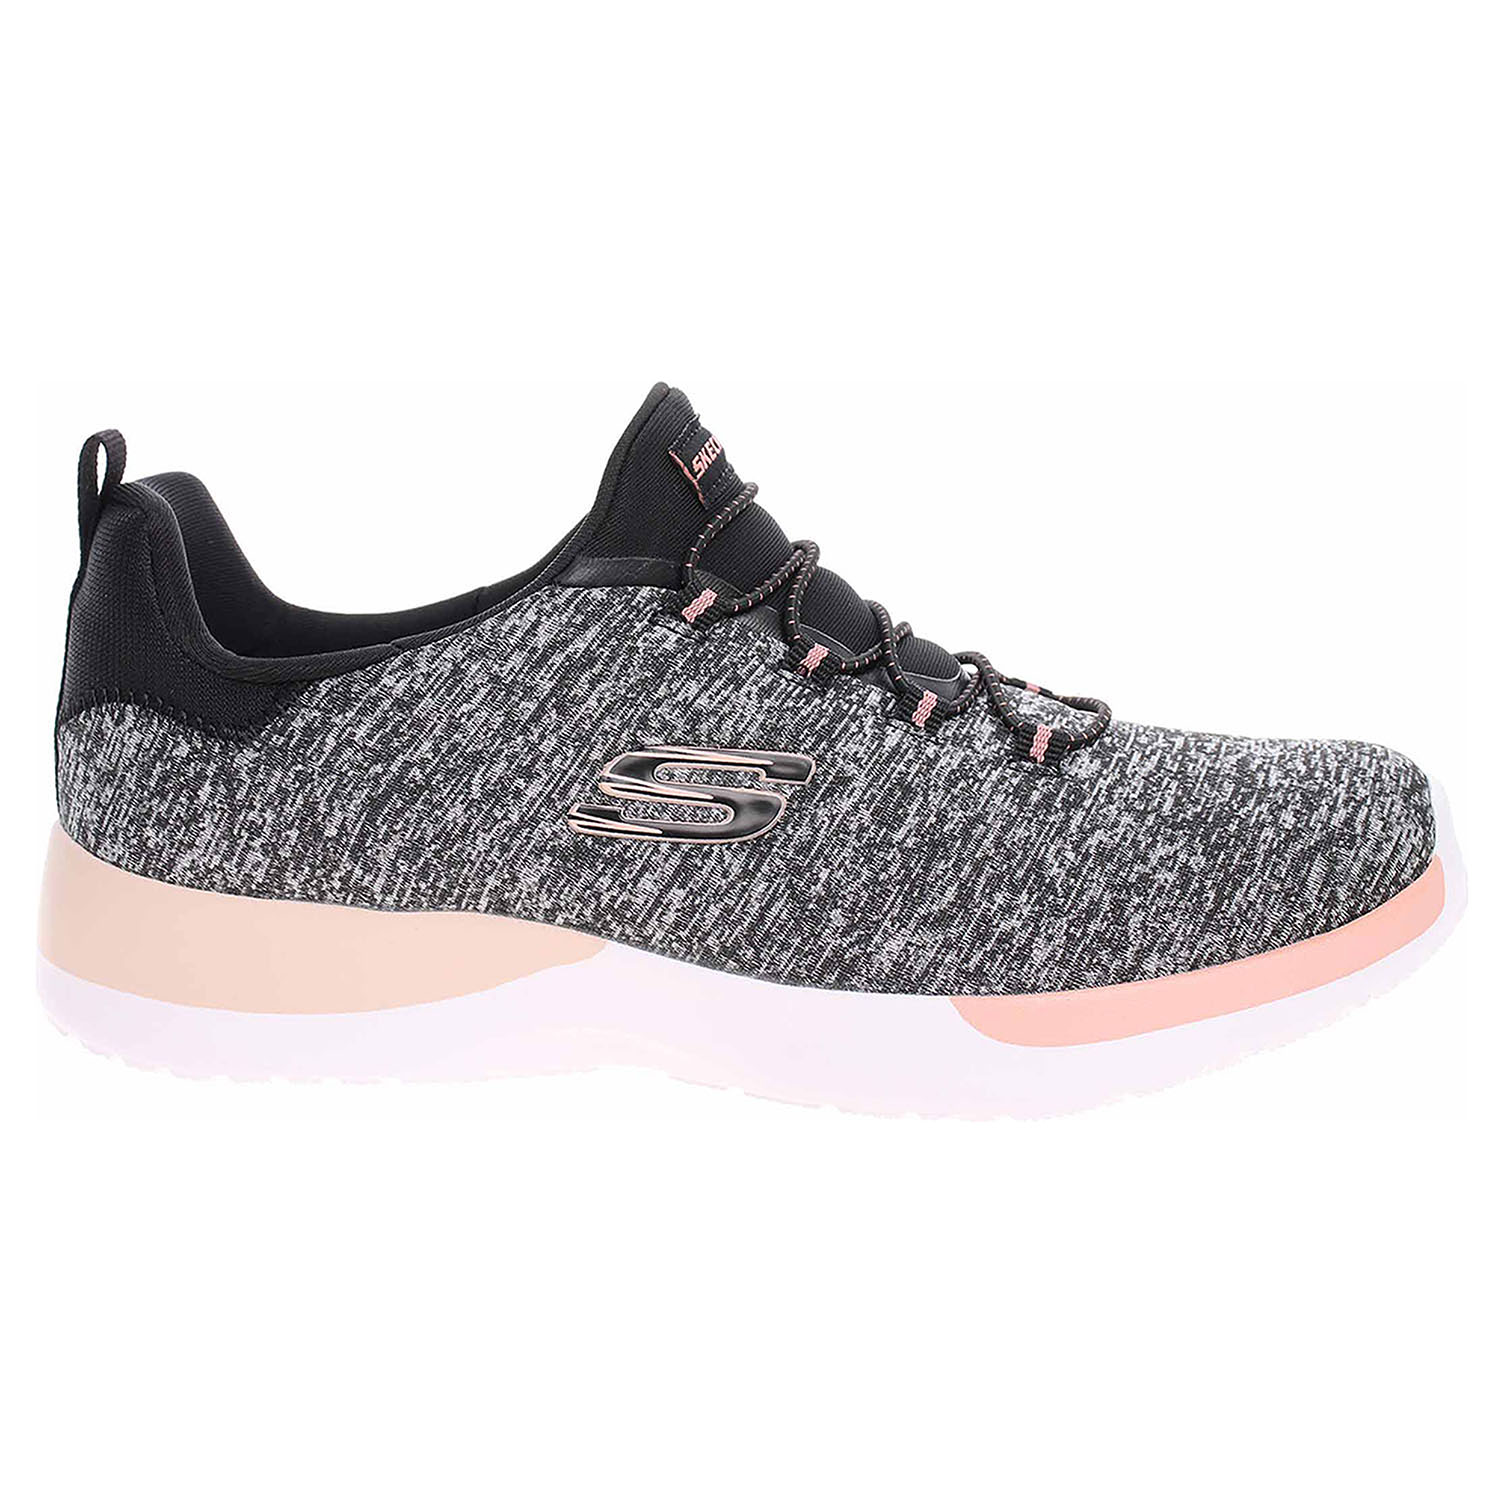 Skechers Dynamight Break-Through black-coral 12991 BKCL 39